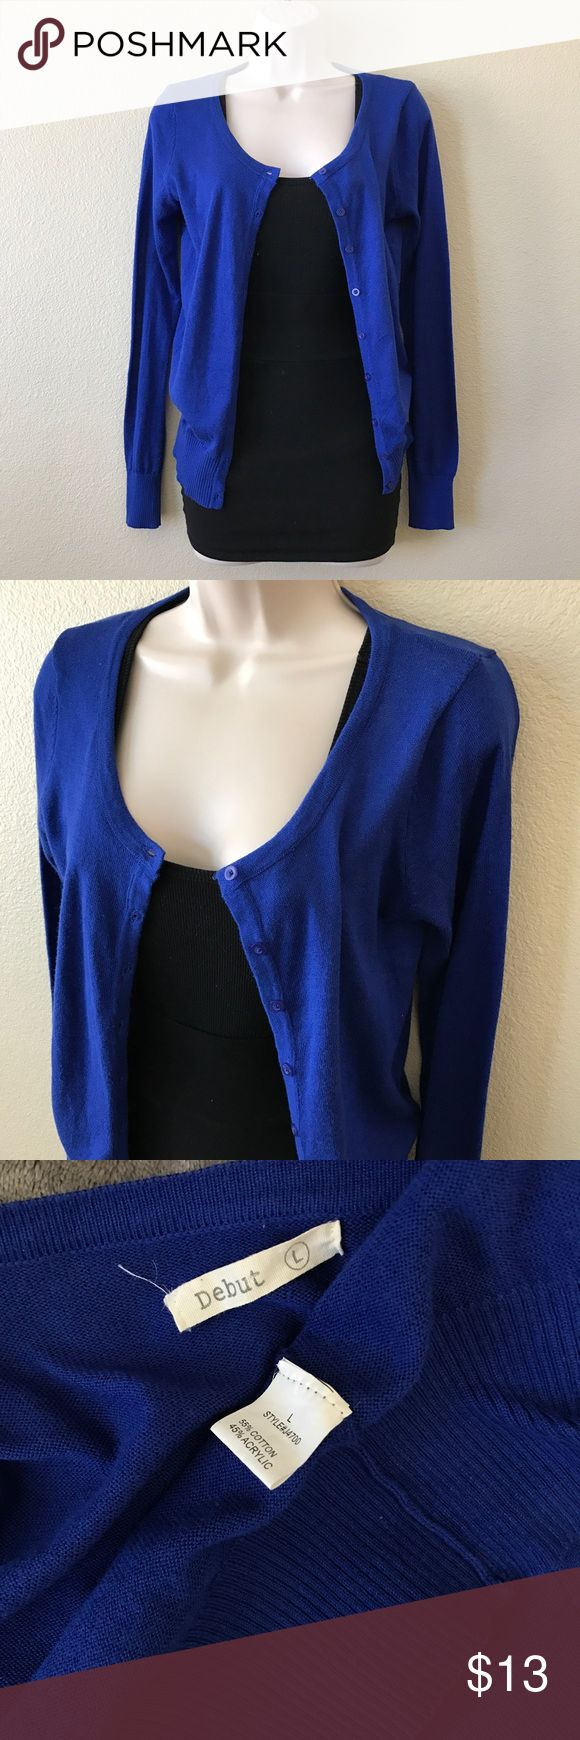 Royal Blue Cardigan Excellent used condition, like new! True to color. Lightweight. Office attire. Spring. Cotton/acrylic. Debut Sweaters Cardigans